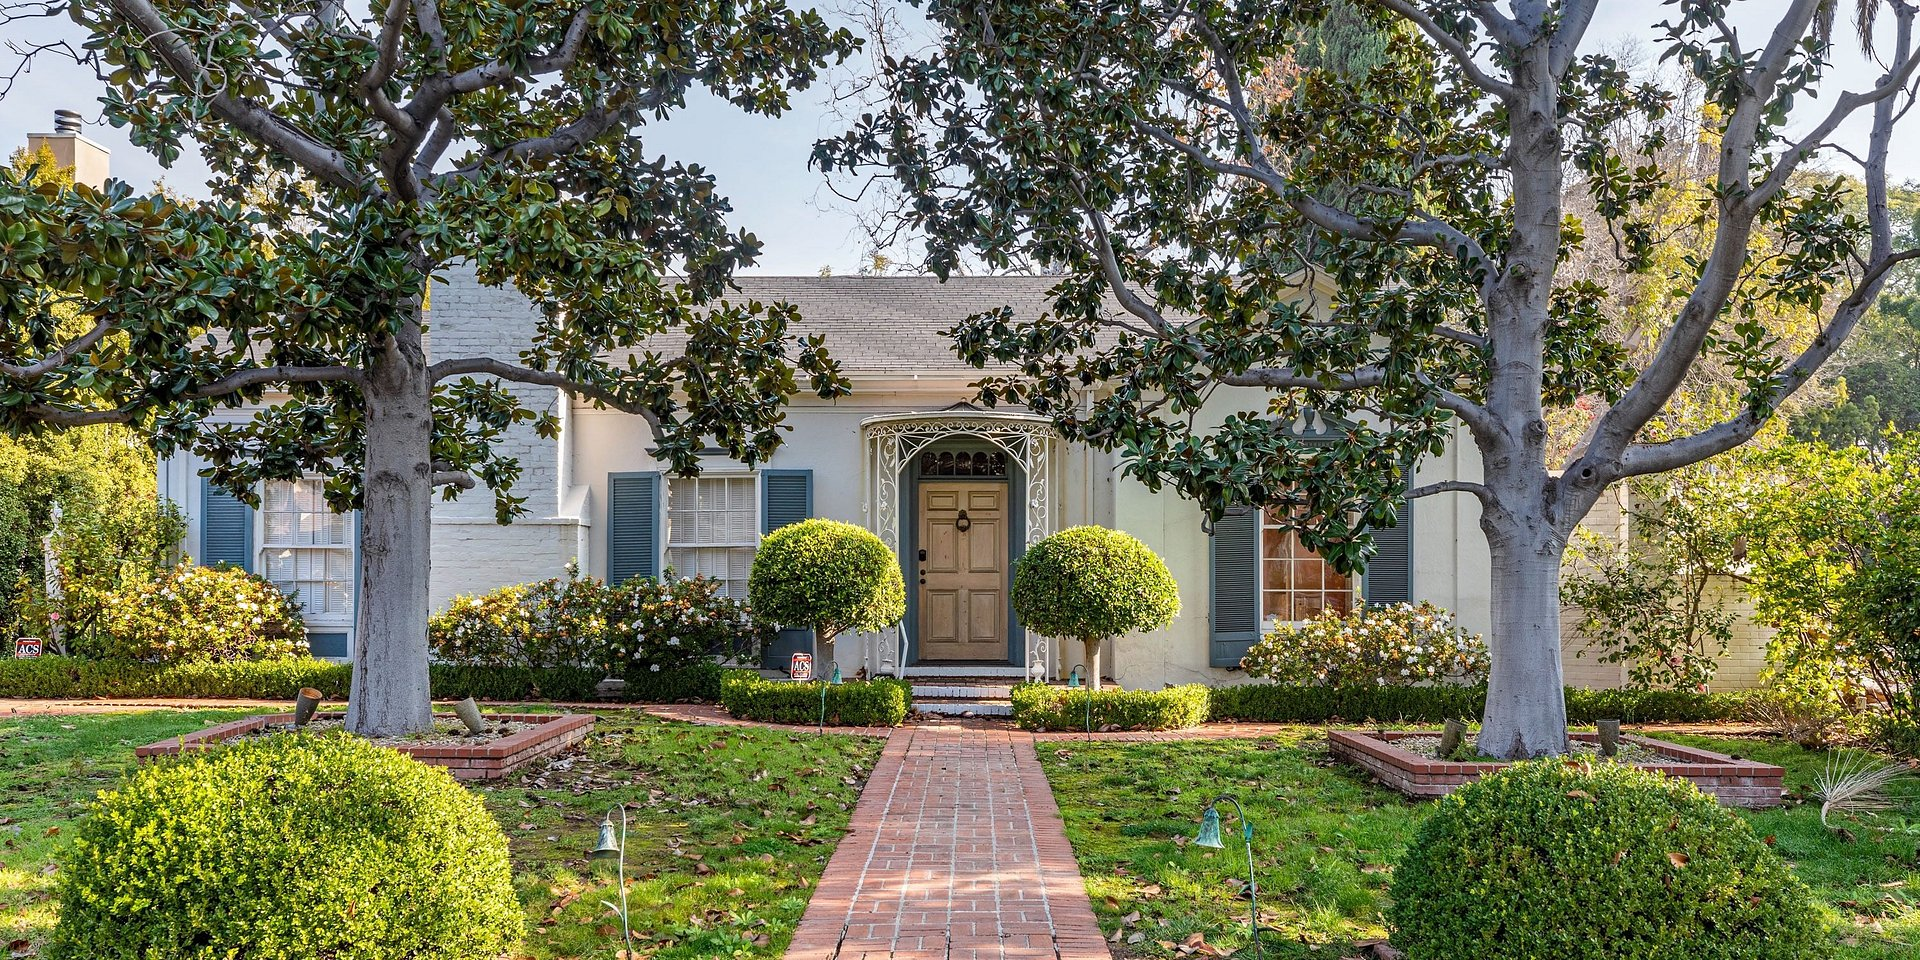 Coldwell Banker Realty Lists a Beverly Hills Property for $6.75 Million